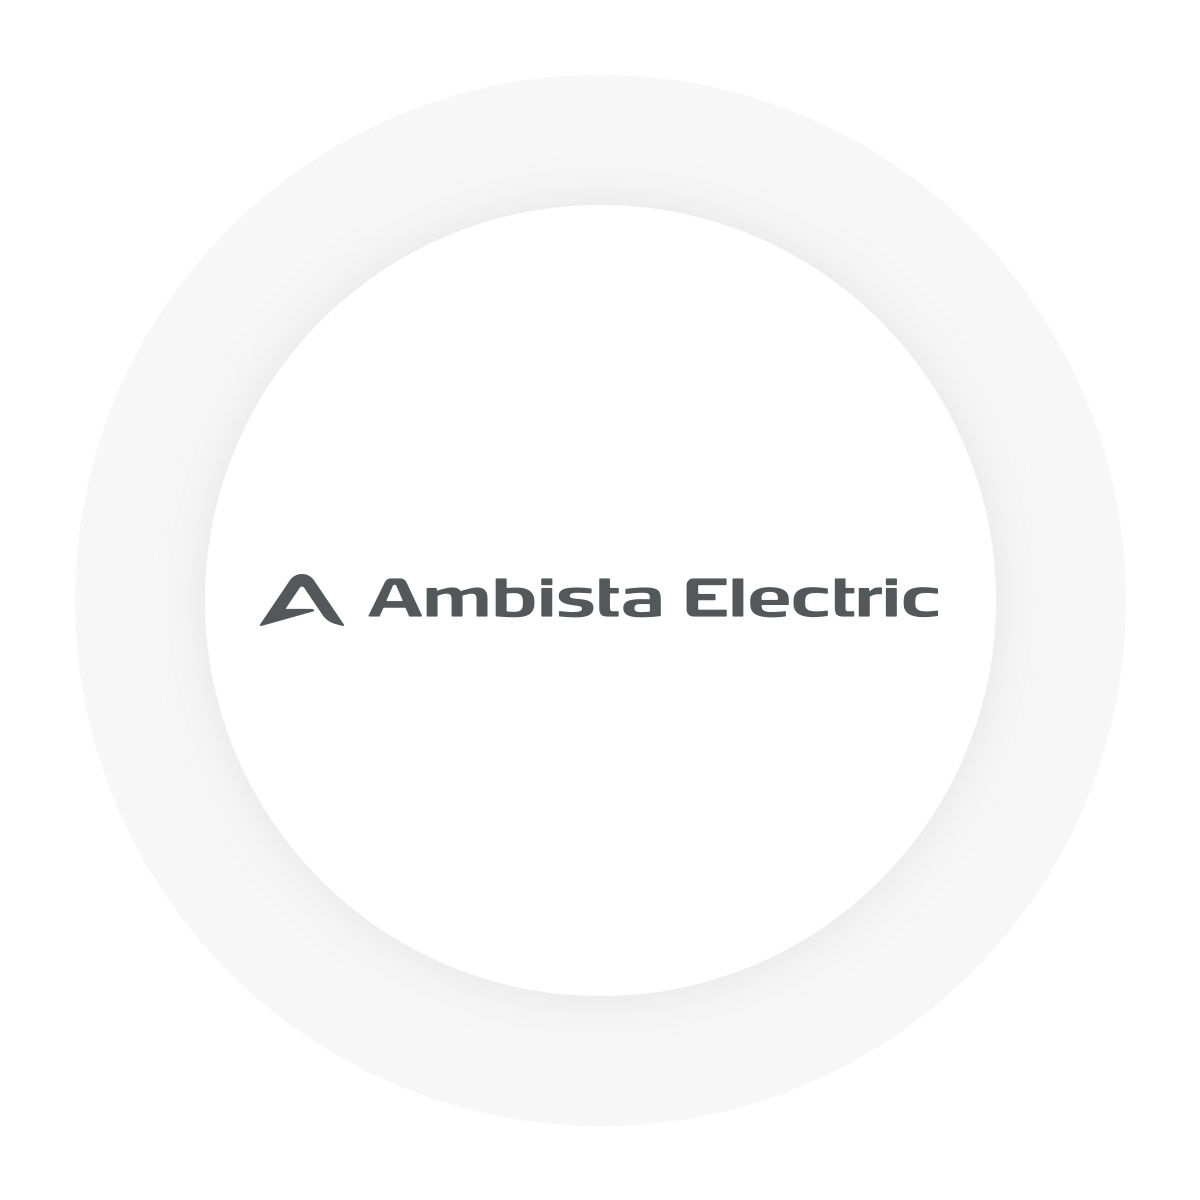 Optimized heat pumps - Ambista Electric focuses on smaller selection of models with higher functionality within the range.